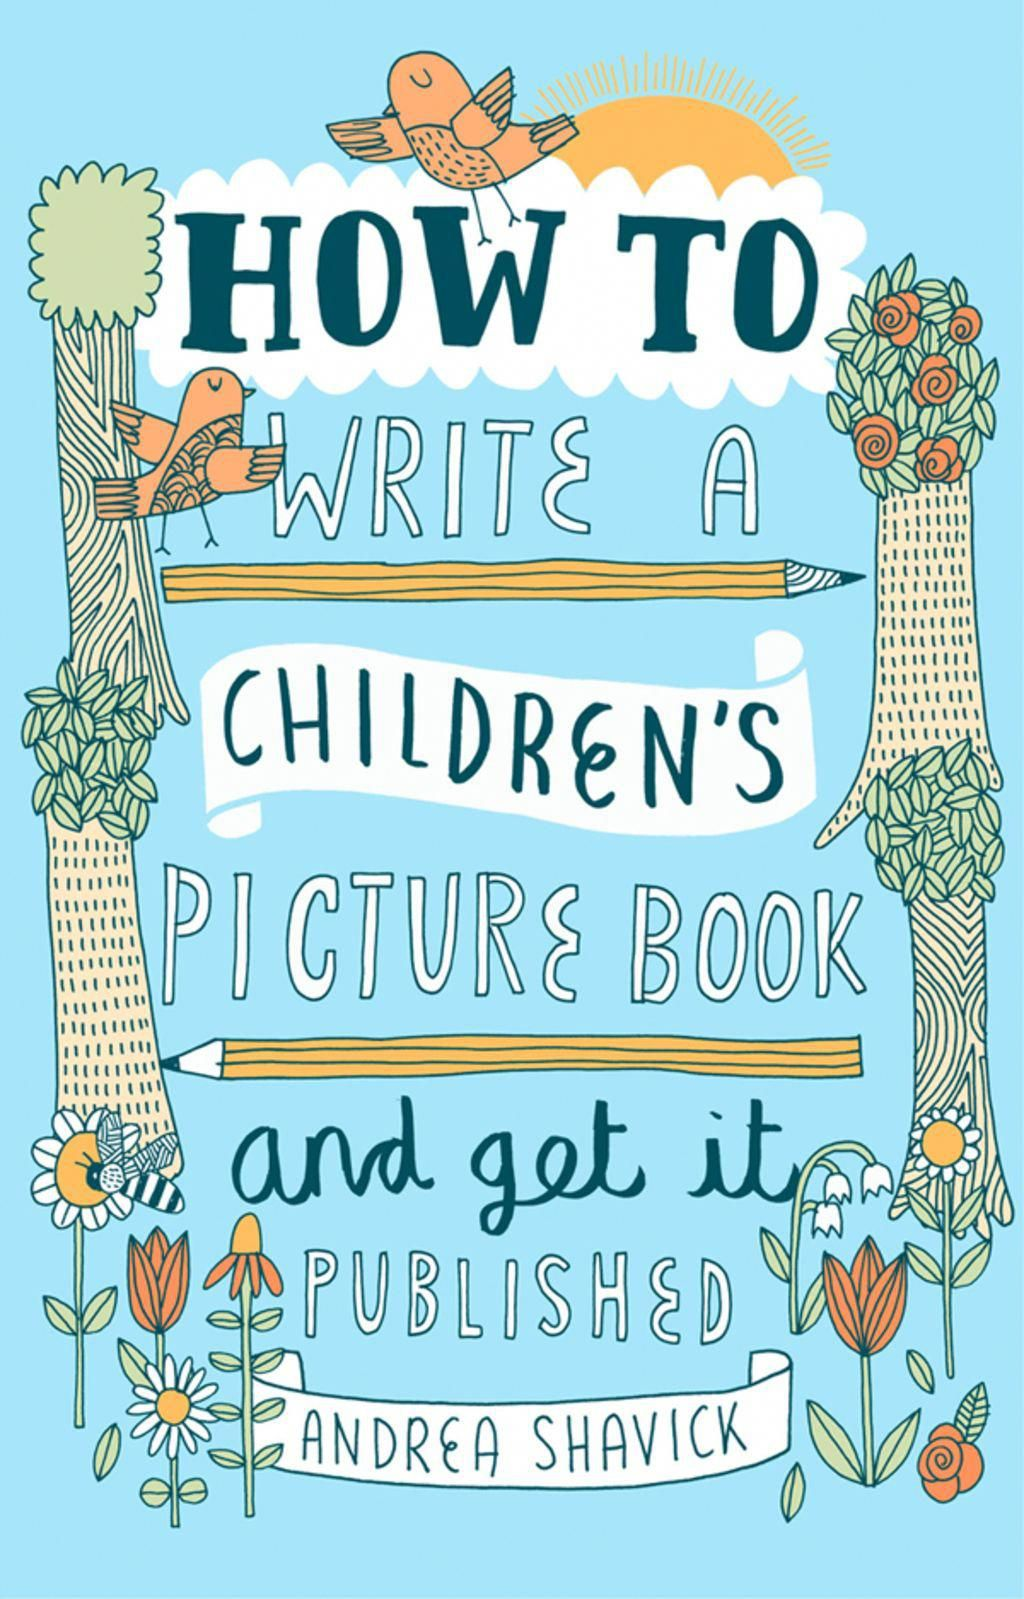 how to write a children's picture book and get it